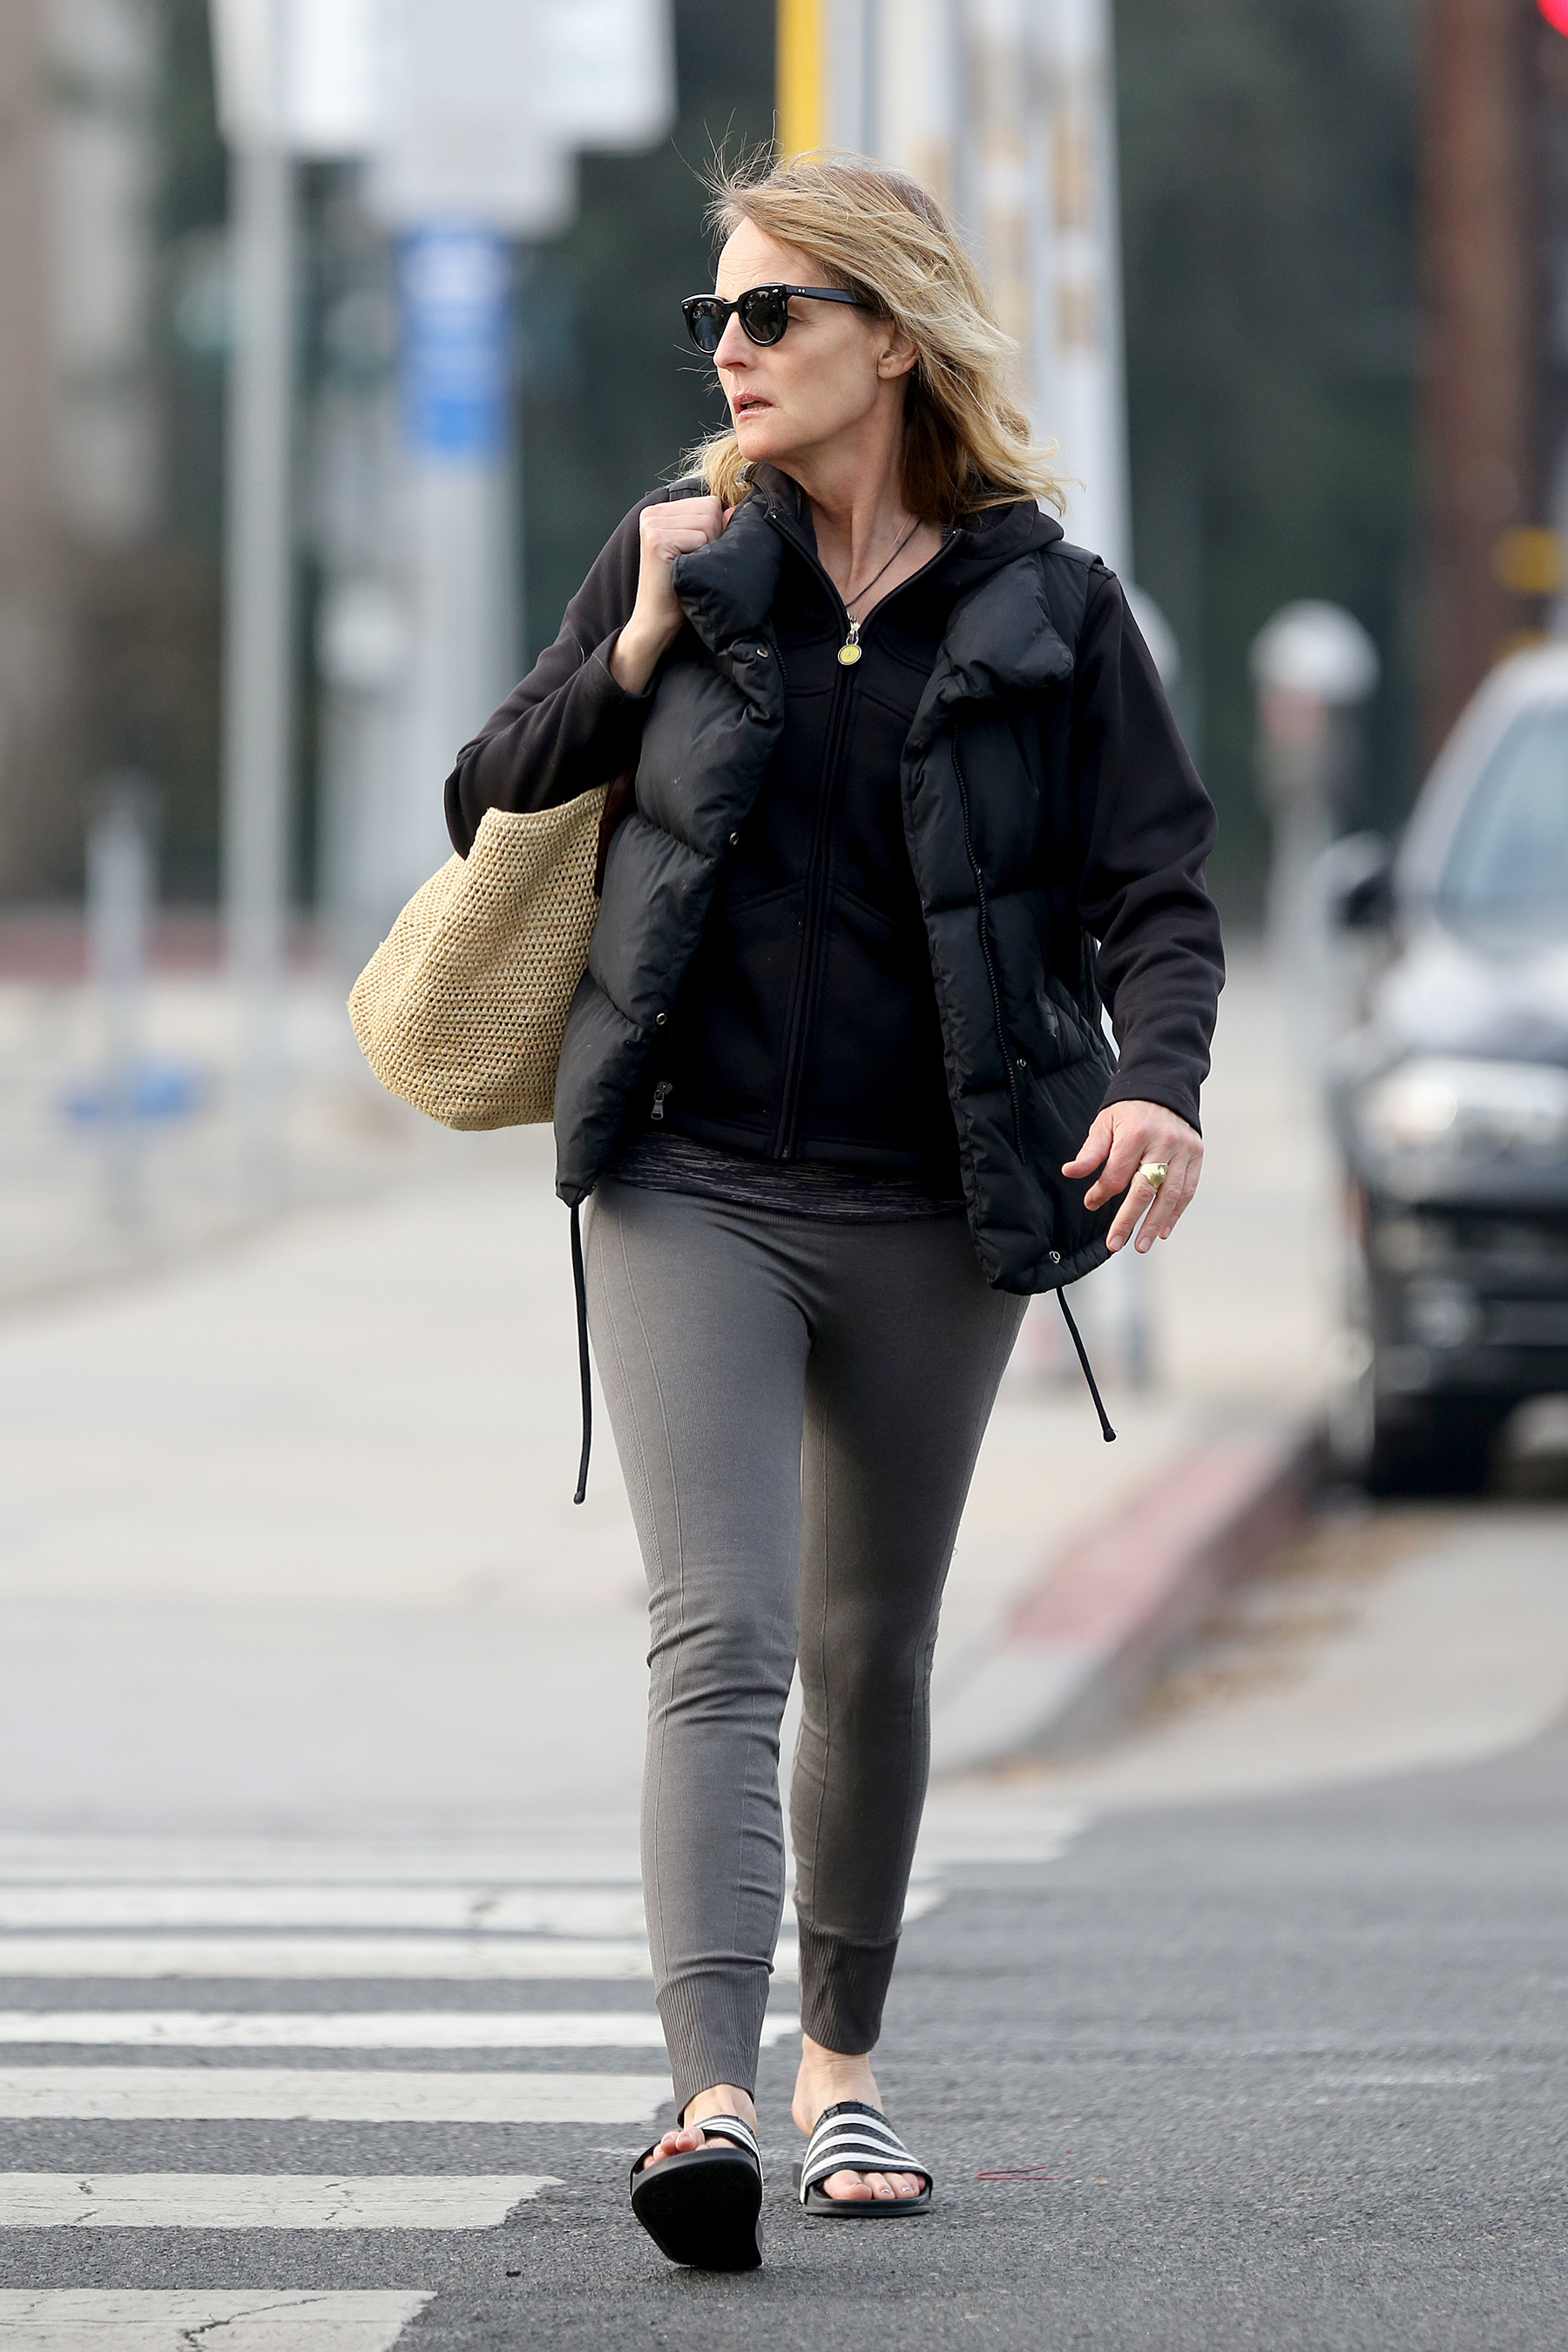 Helen Hunt Hot in Black Gaugle